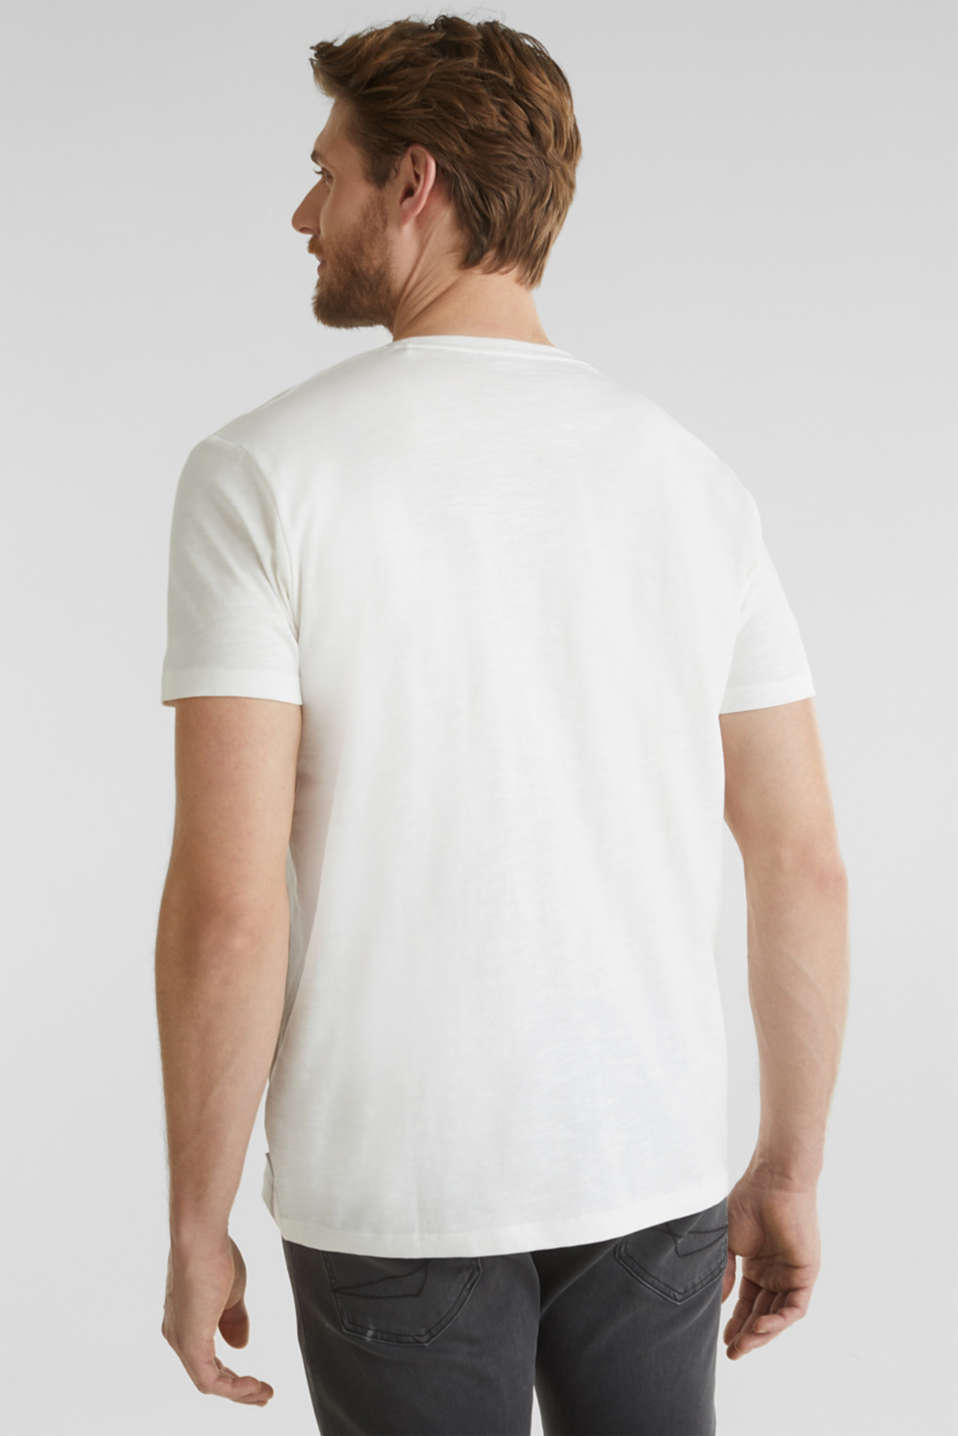 Jersey top with a print,100% organic cotton, OFF WHITE, detail image number 2